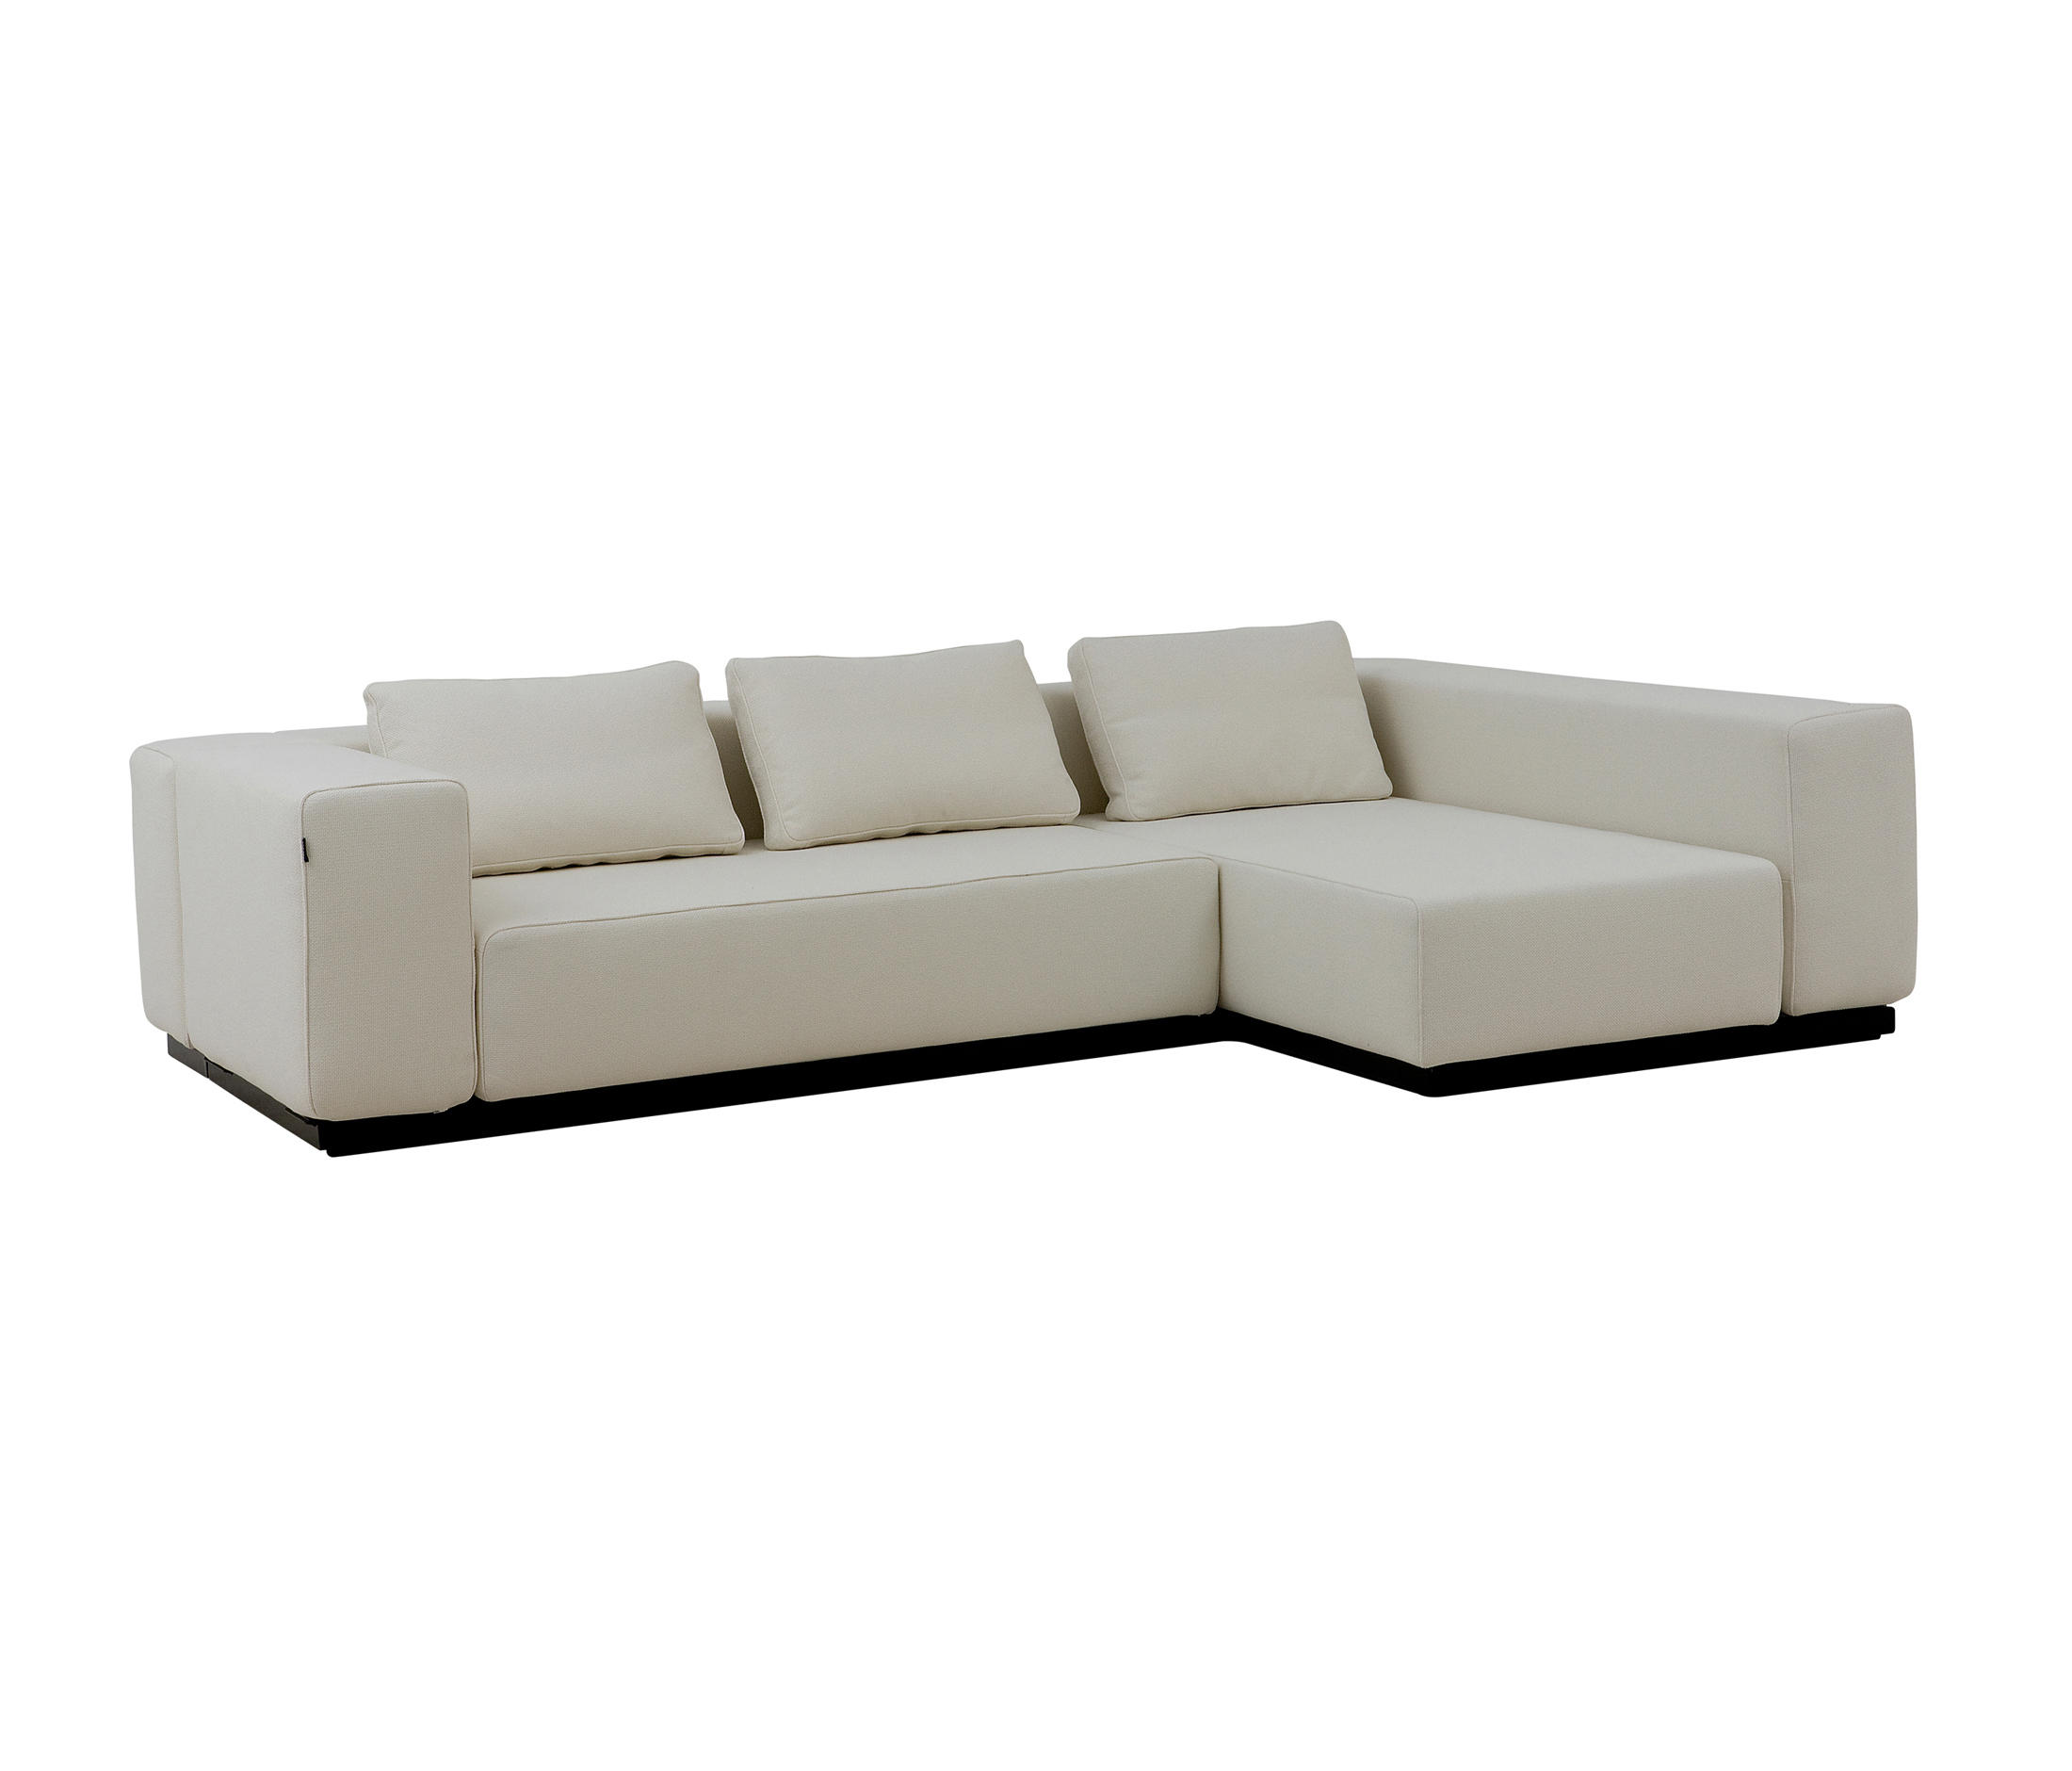 Interio Sofa Modular Sofa Nevada Interio